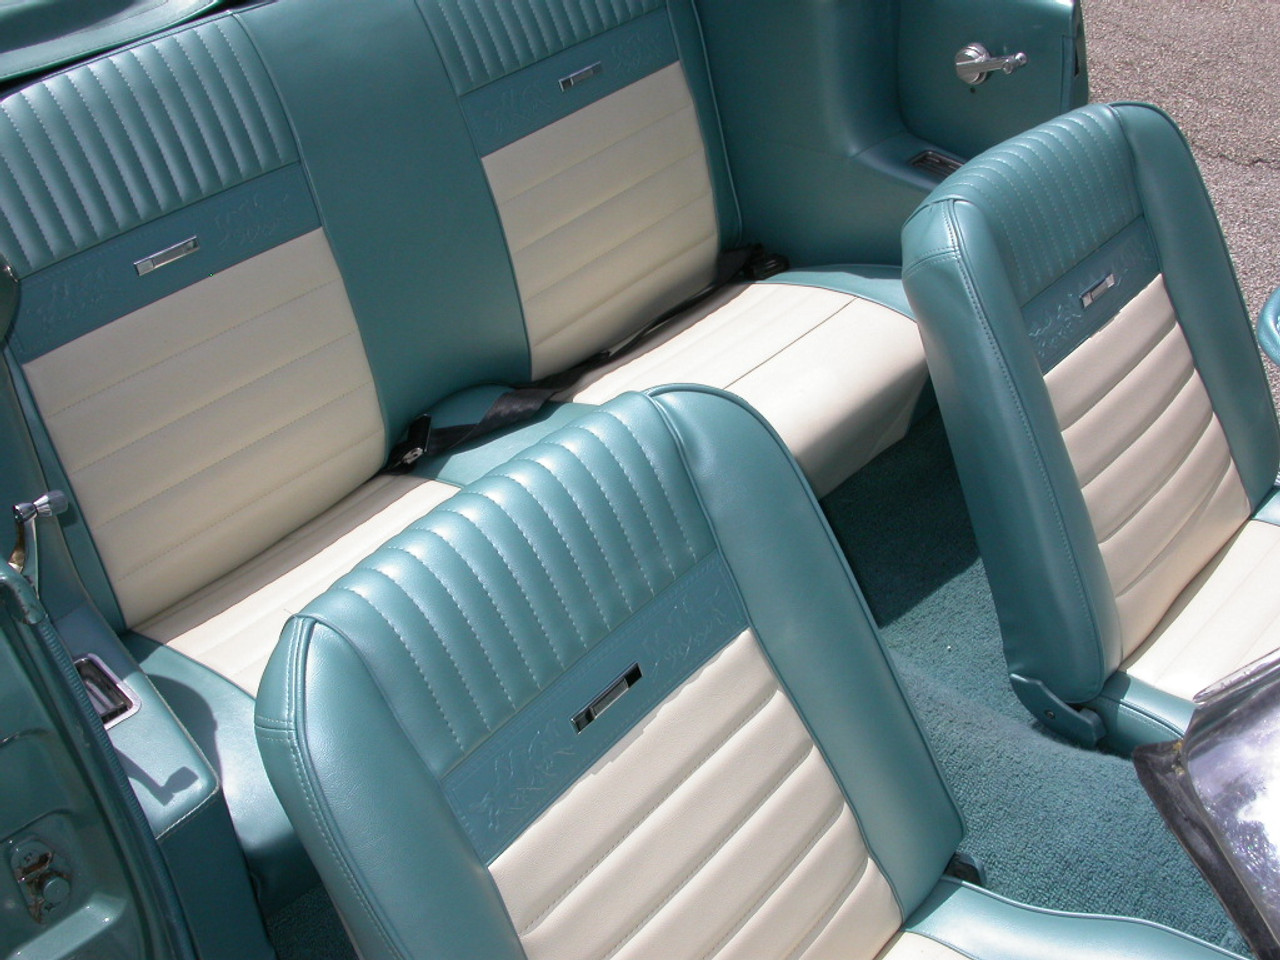 1966 Mustang Convertible Front and Rear Seat Upholstery Blue by TMI-In Stock